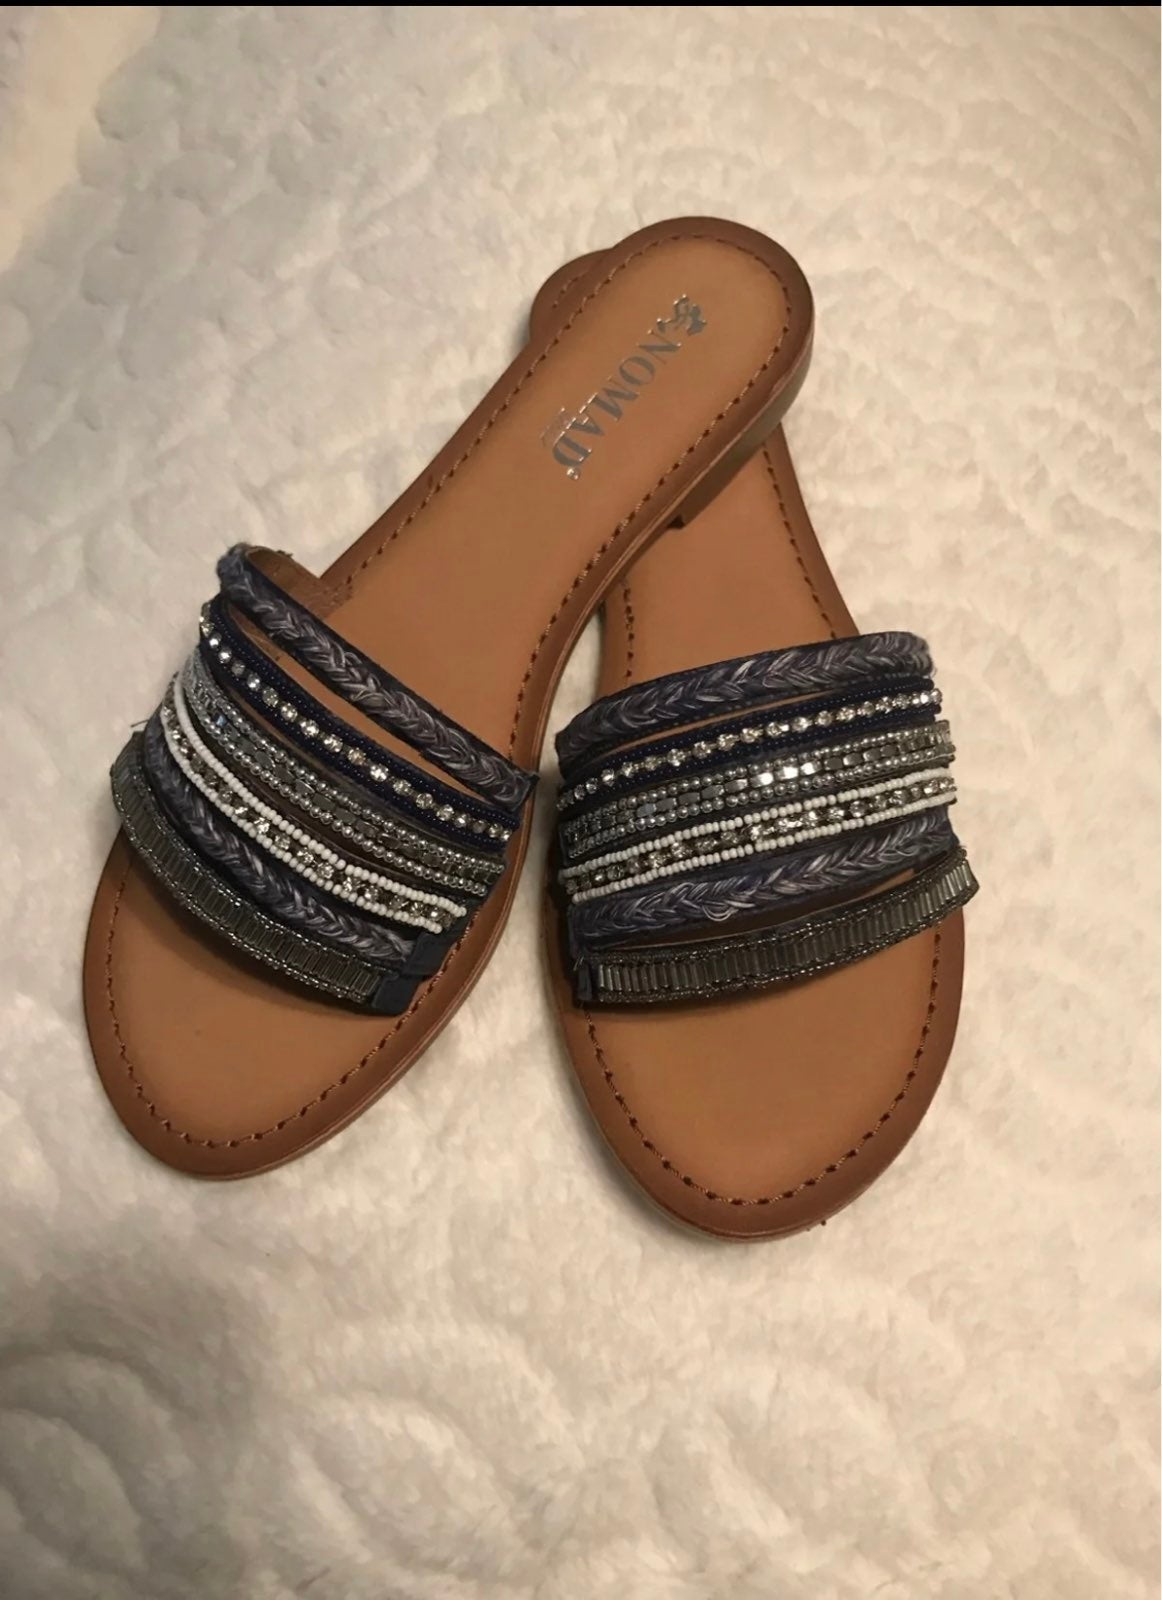 sandals size 8 -NEW!!